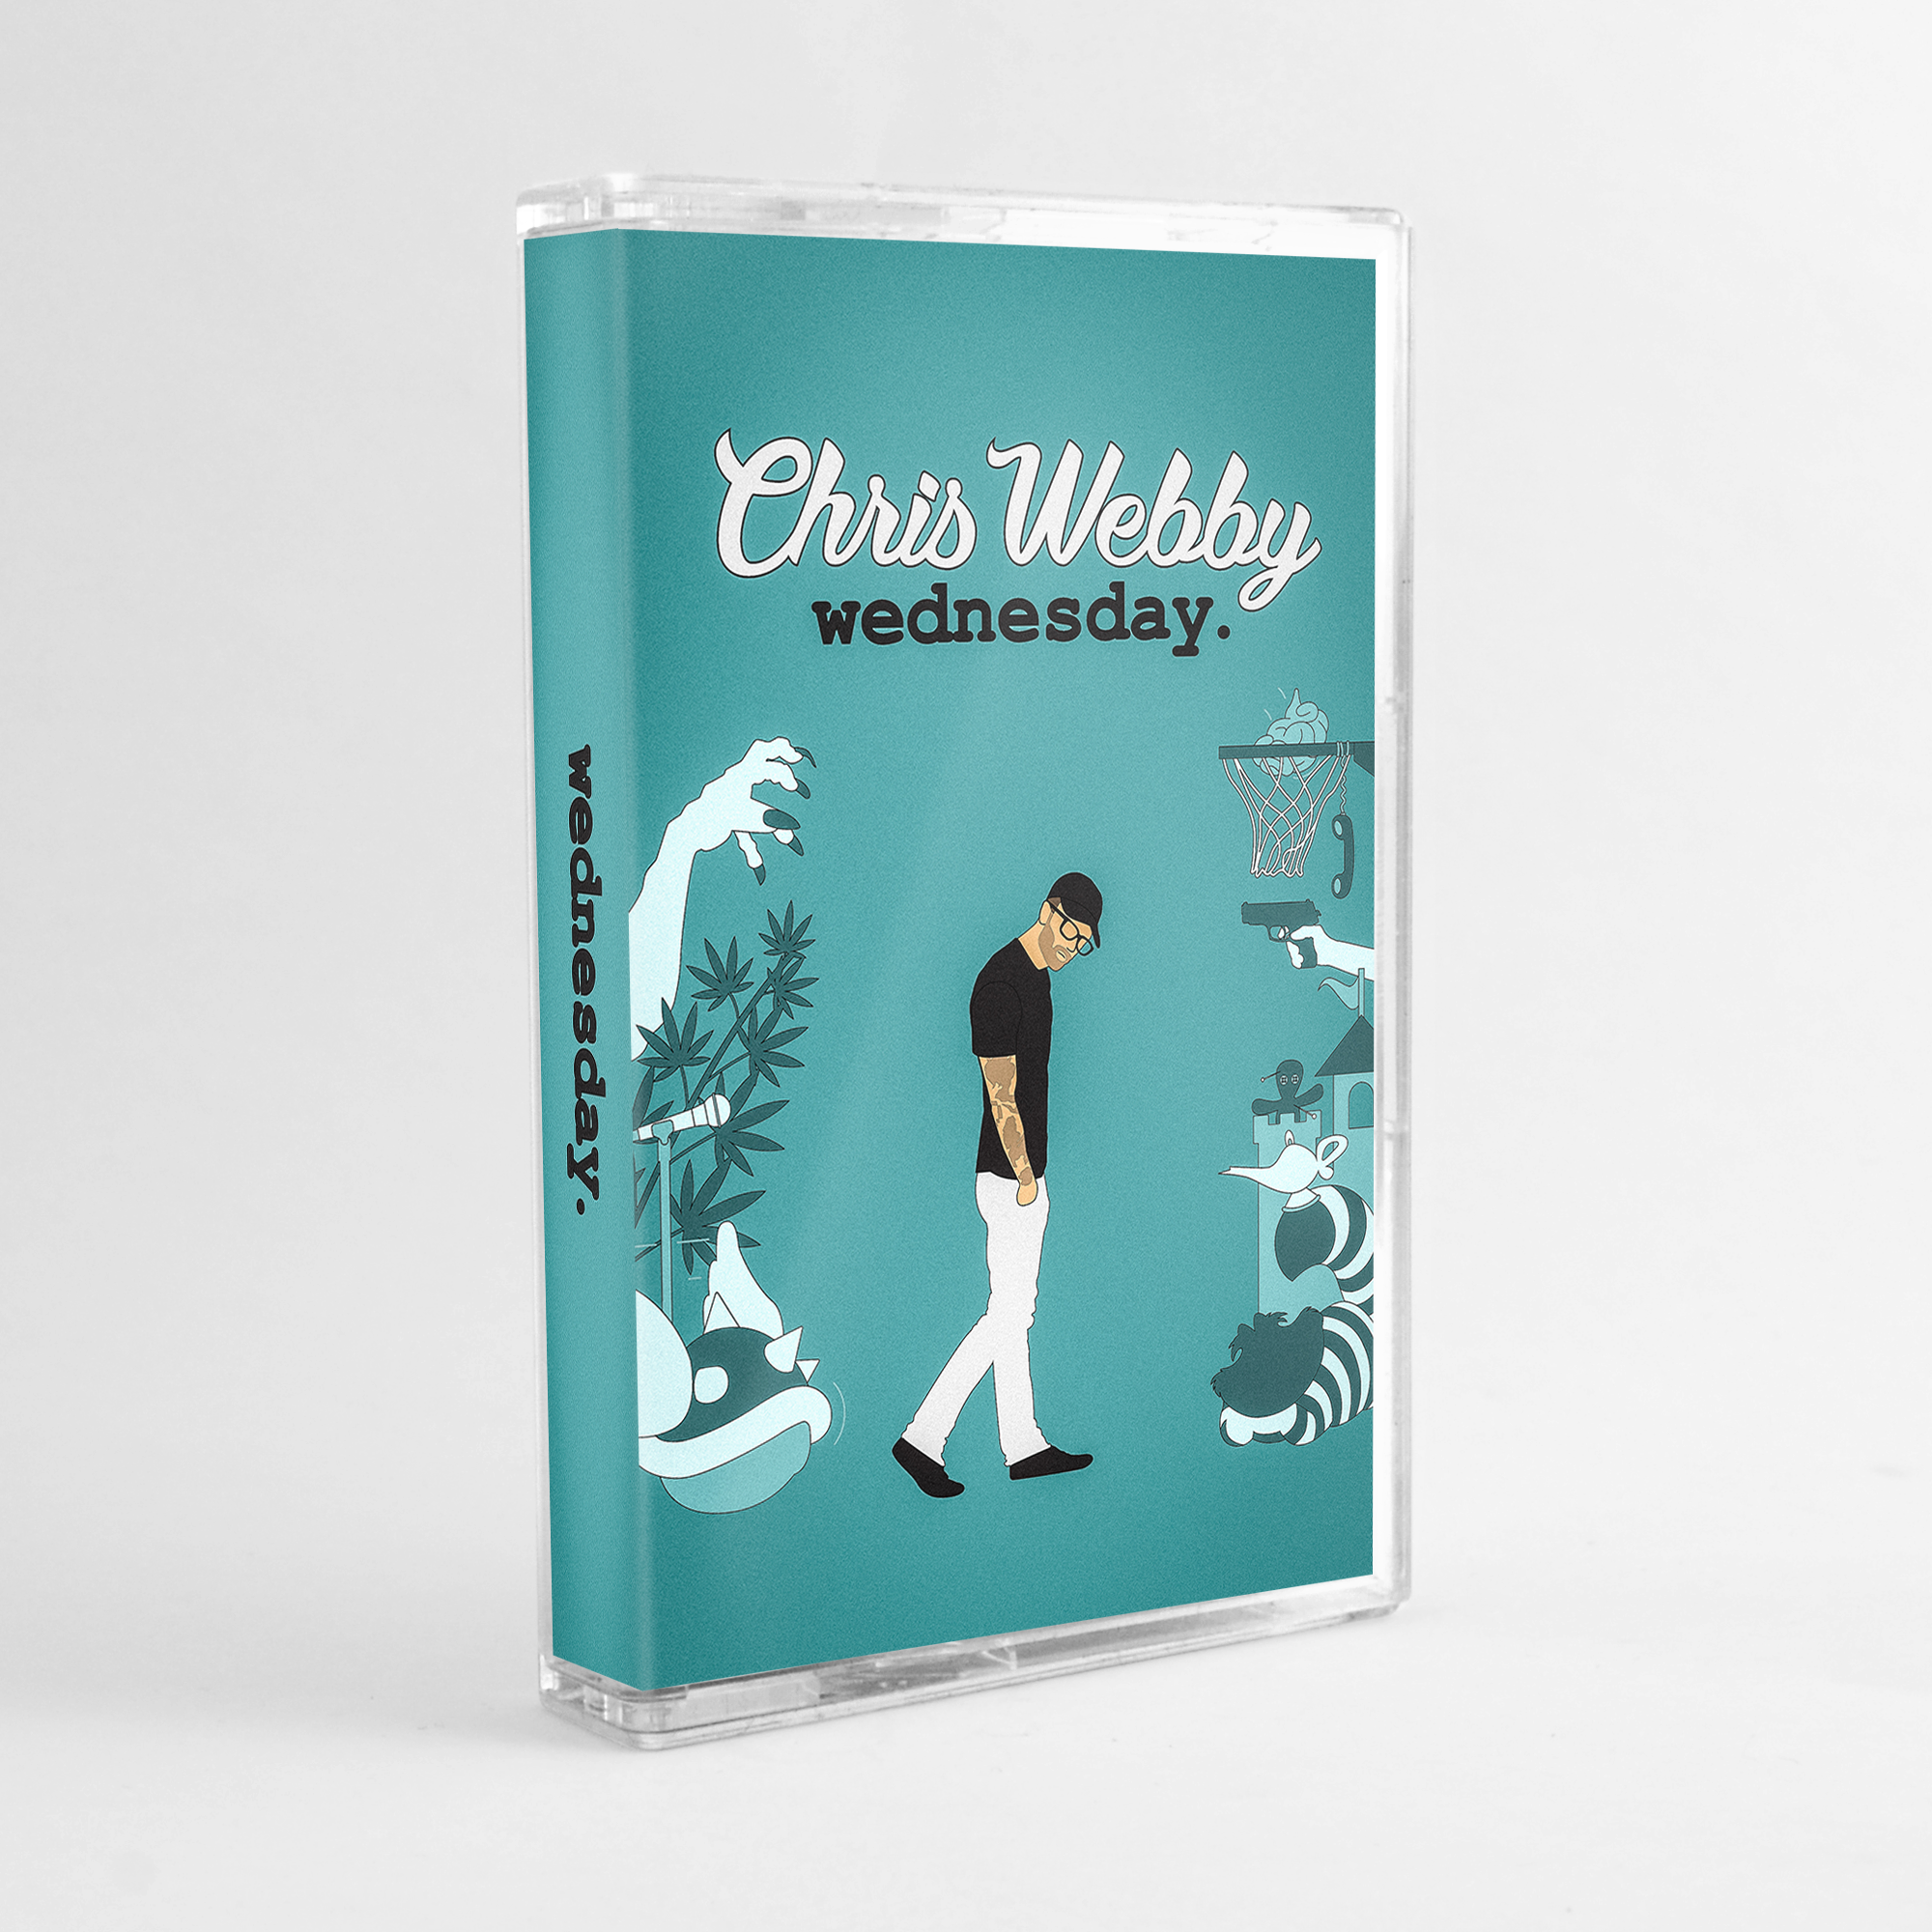 Wednesday Cassette Tape